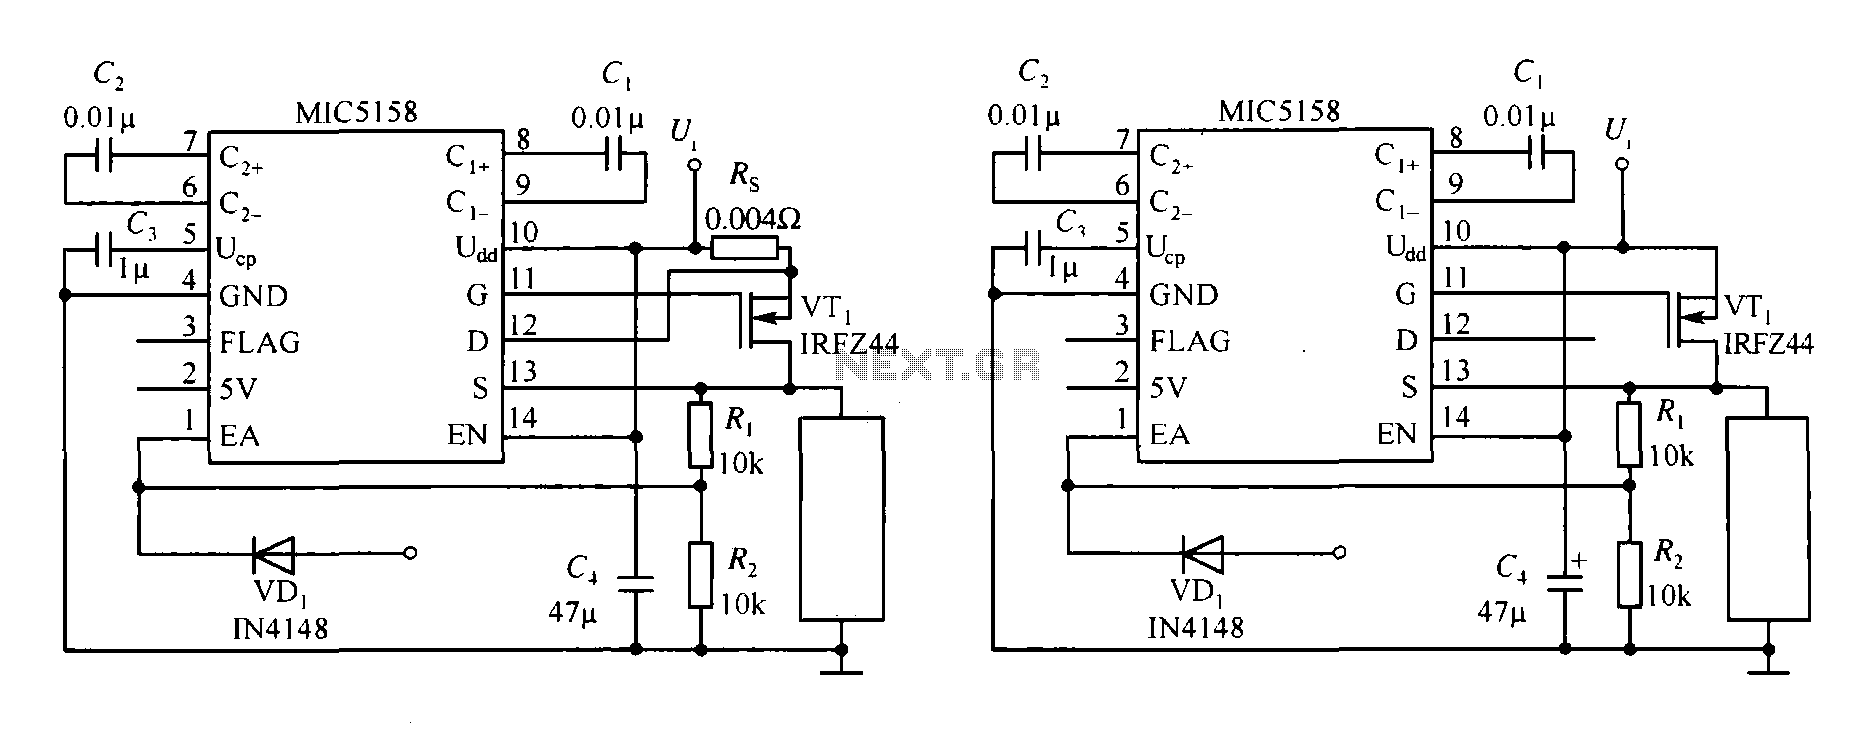 Switching Circuit Page 3 Other Circuits Inverter 4 Power Supply Nextgr A Diagram Of High Speed Switch Constituted Triggered Rising Mic5158